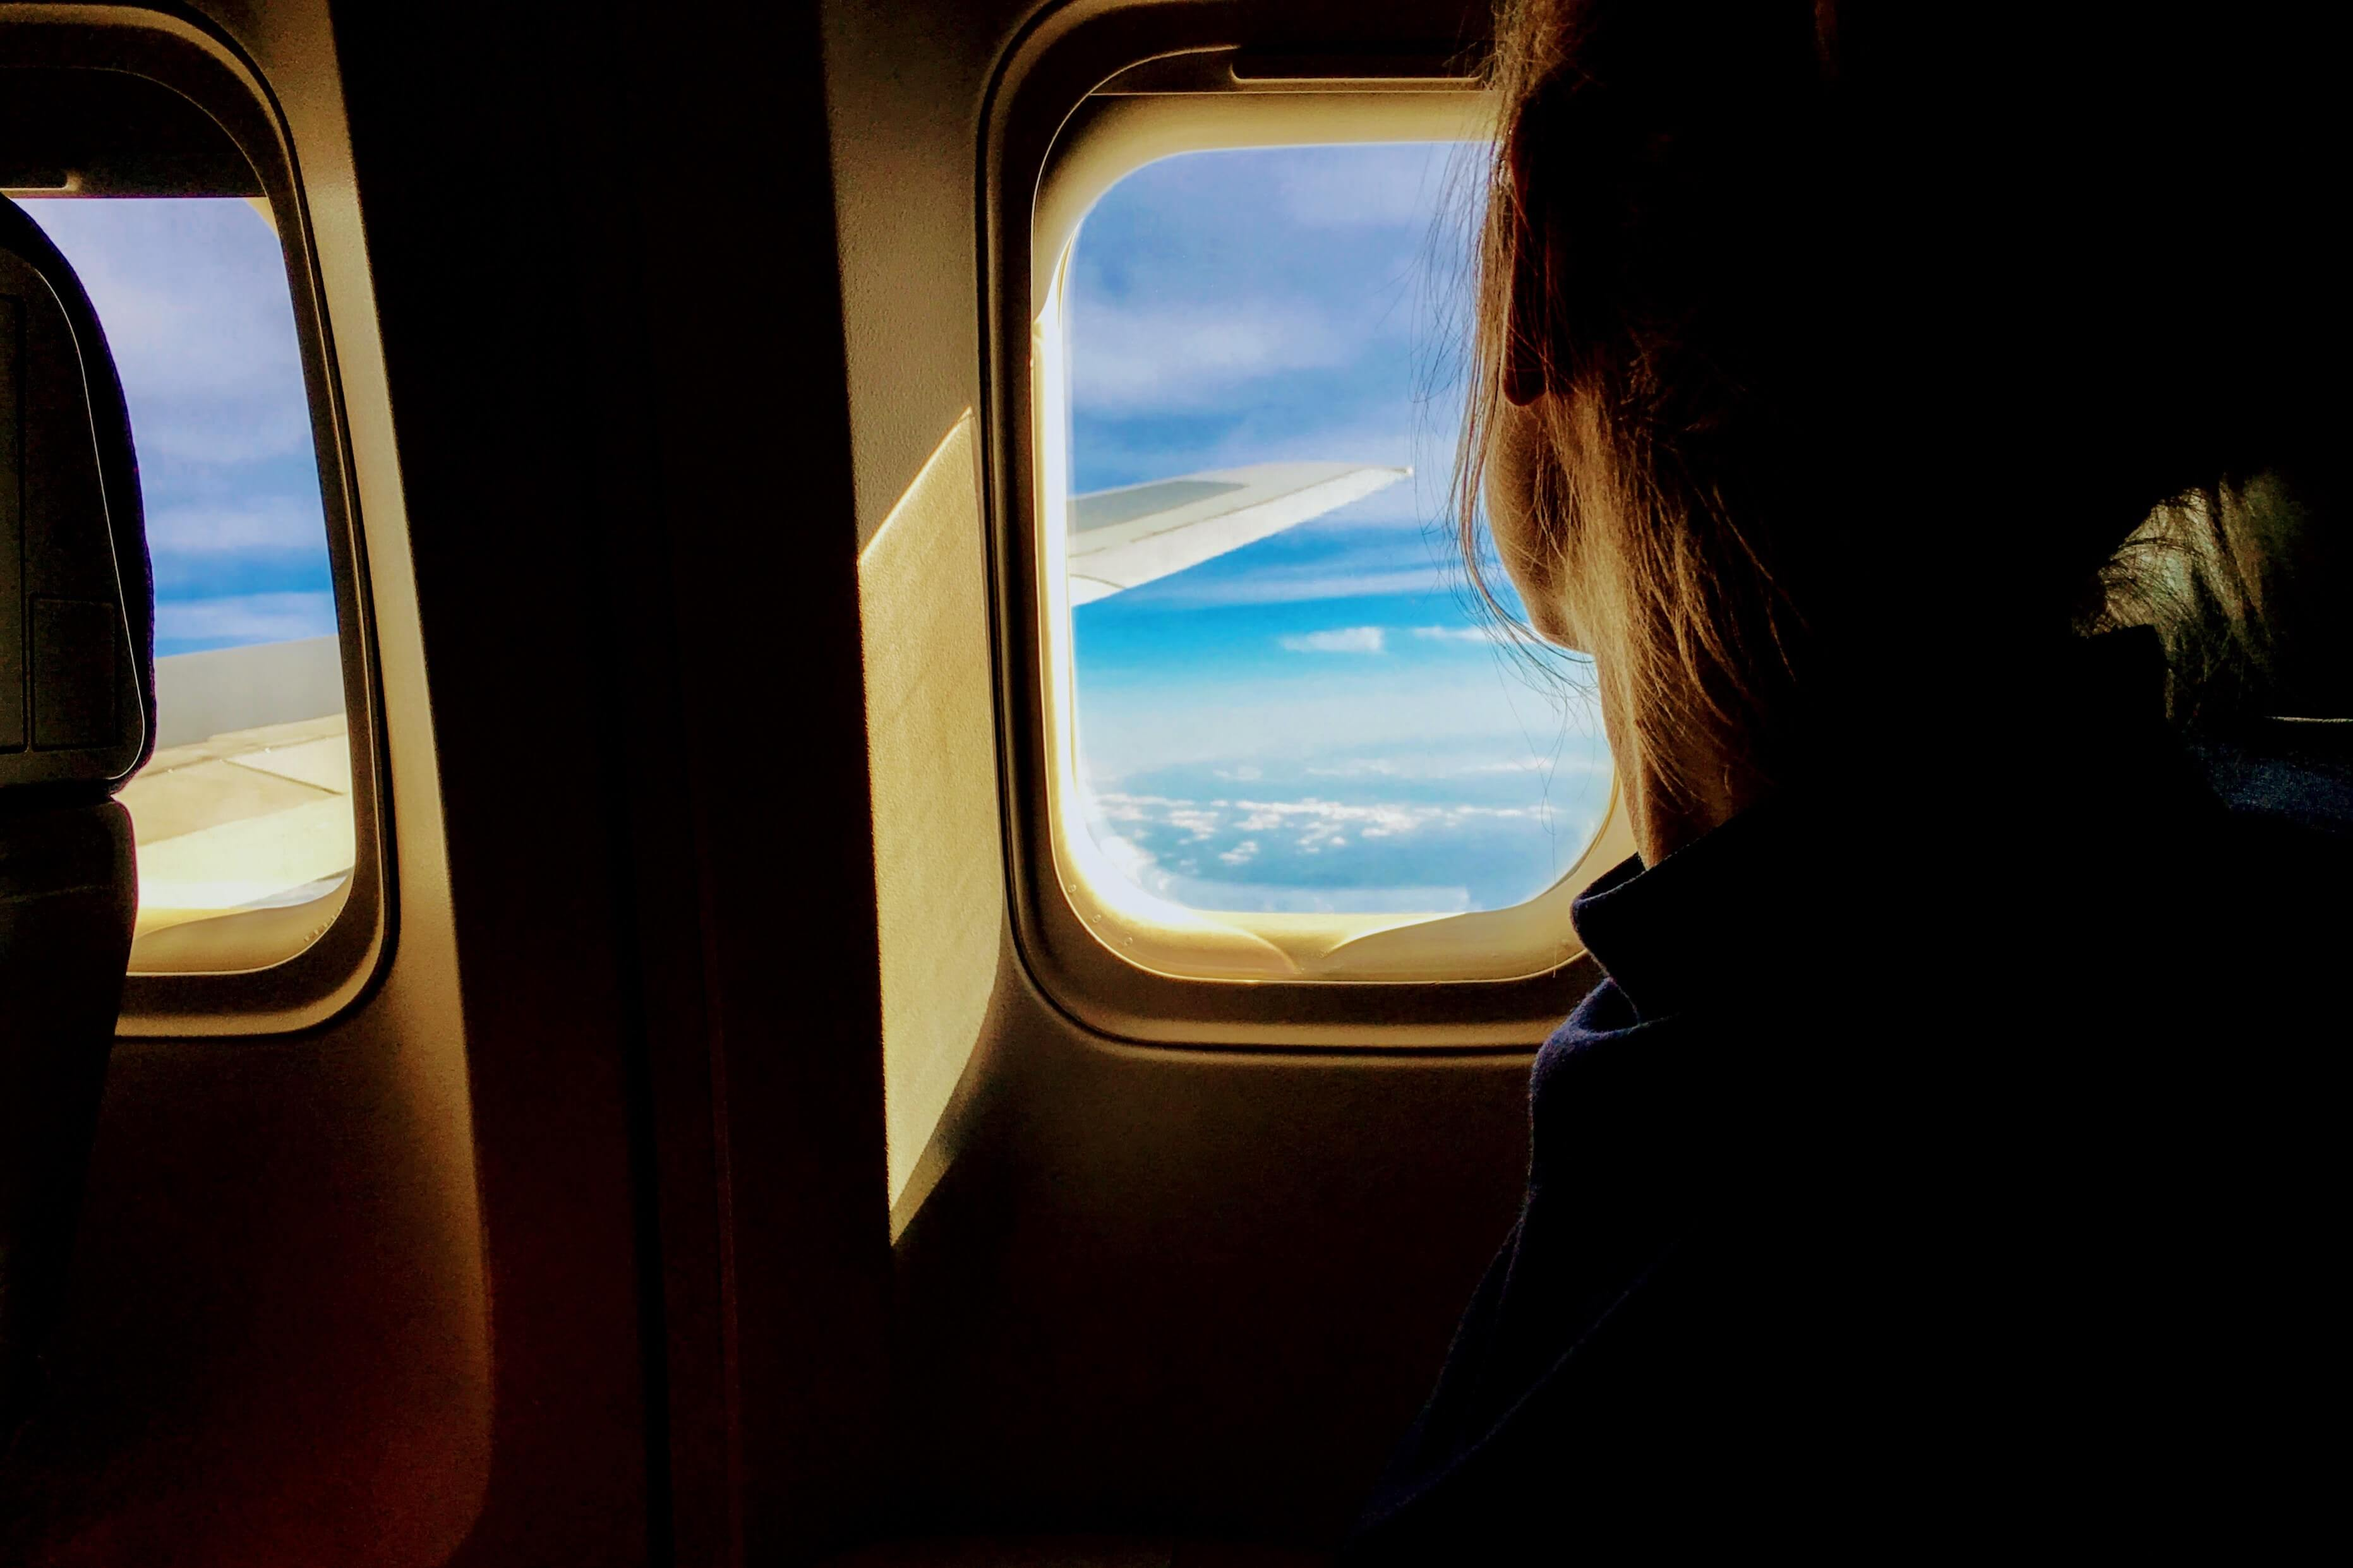 A woman looks out the window of a plan as it soars through the sky.